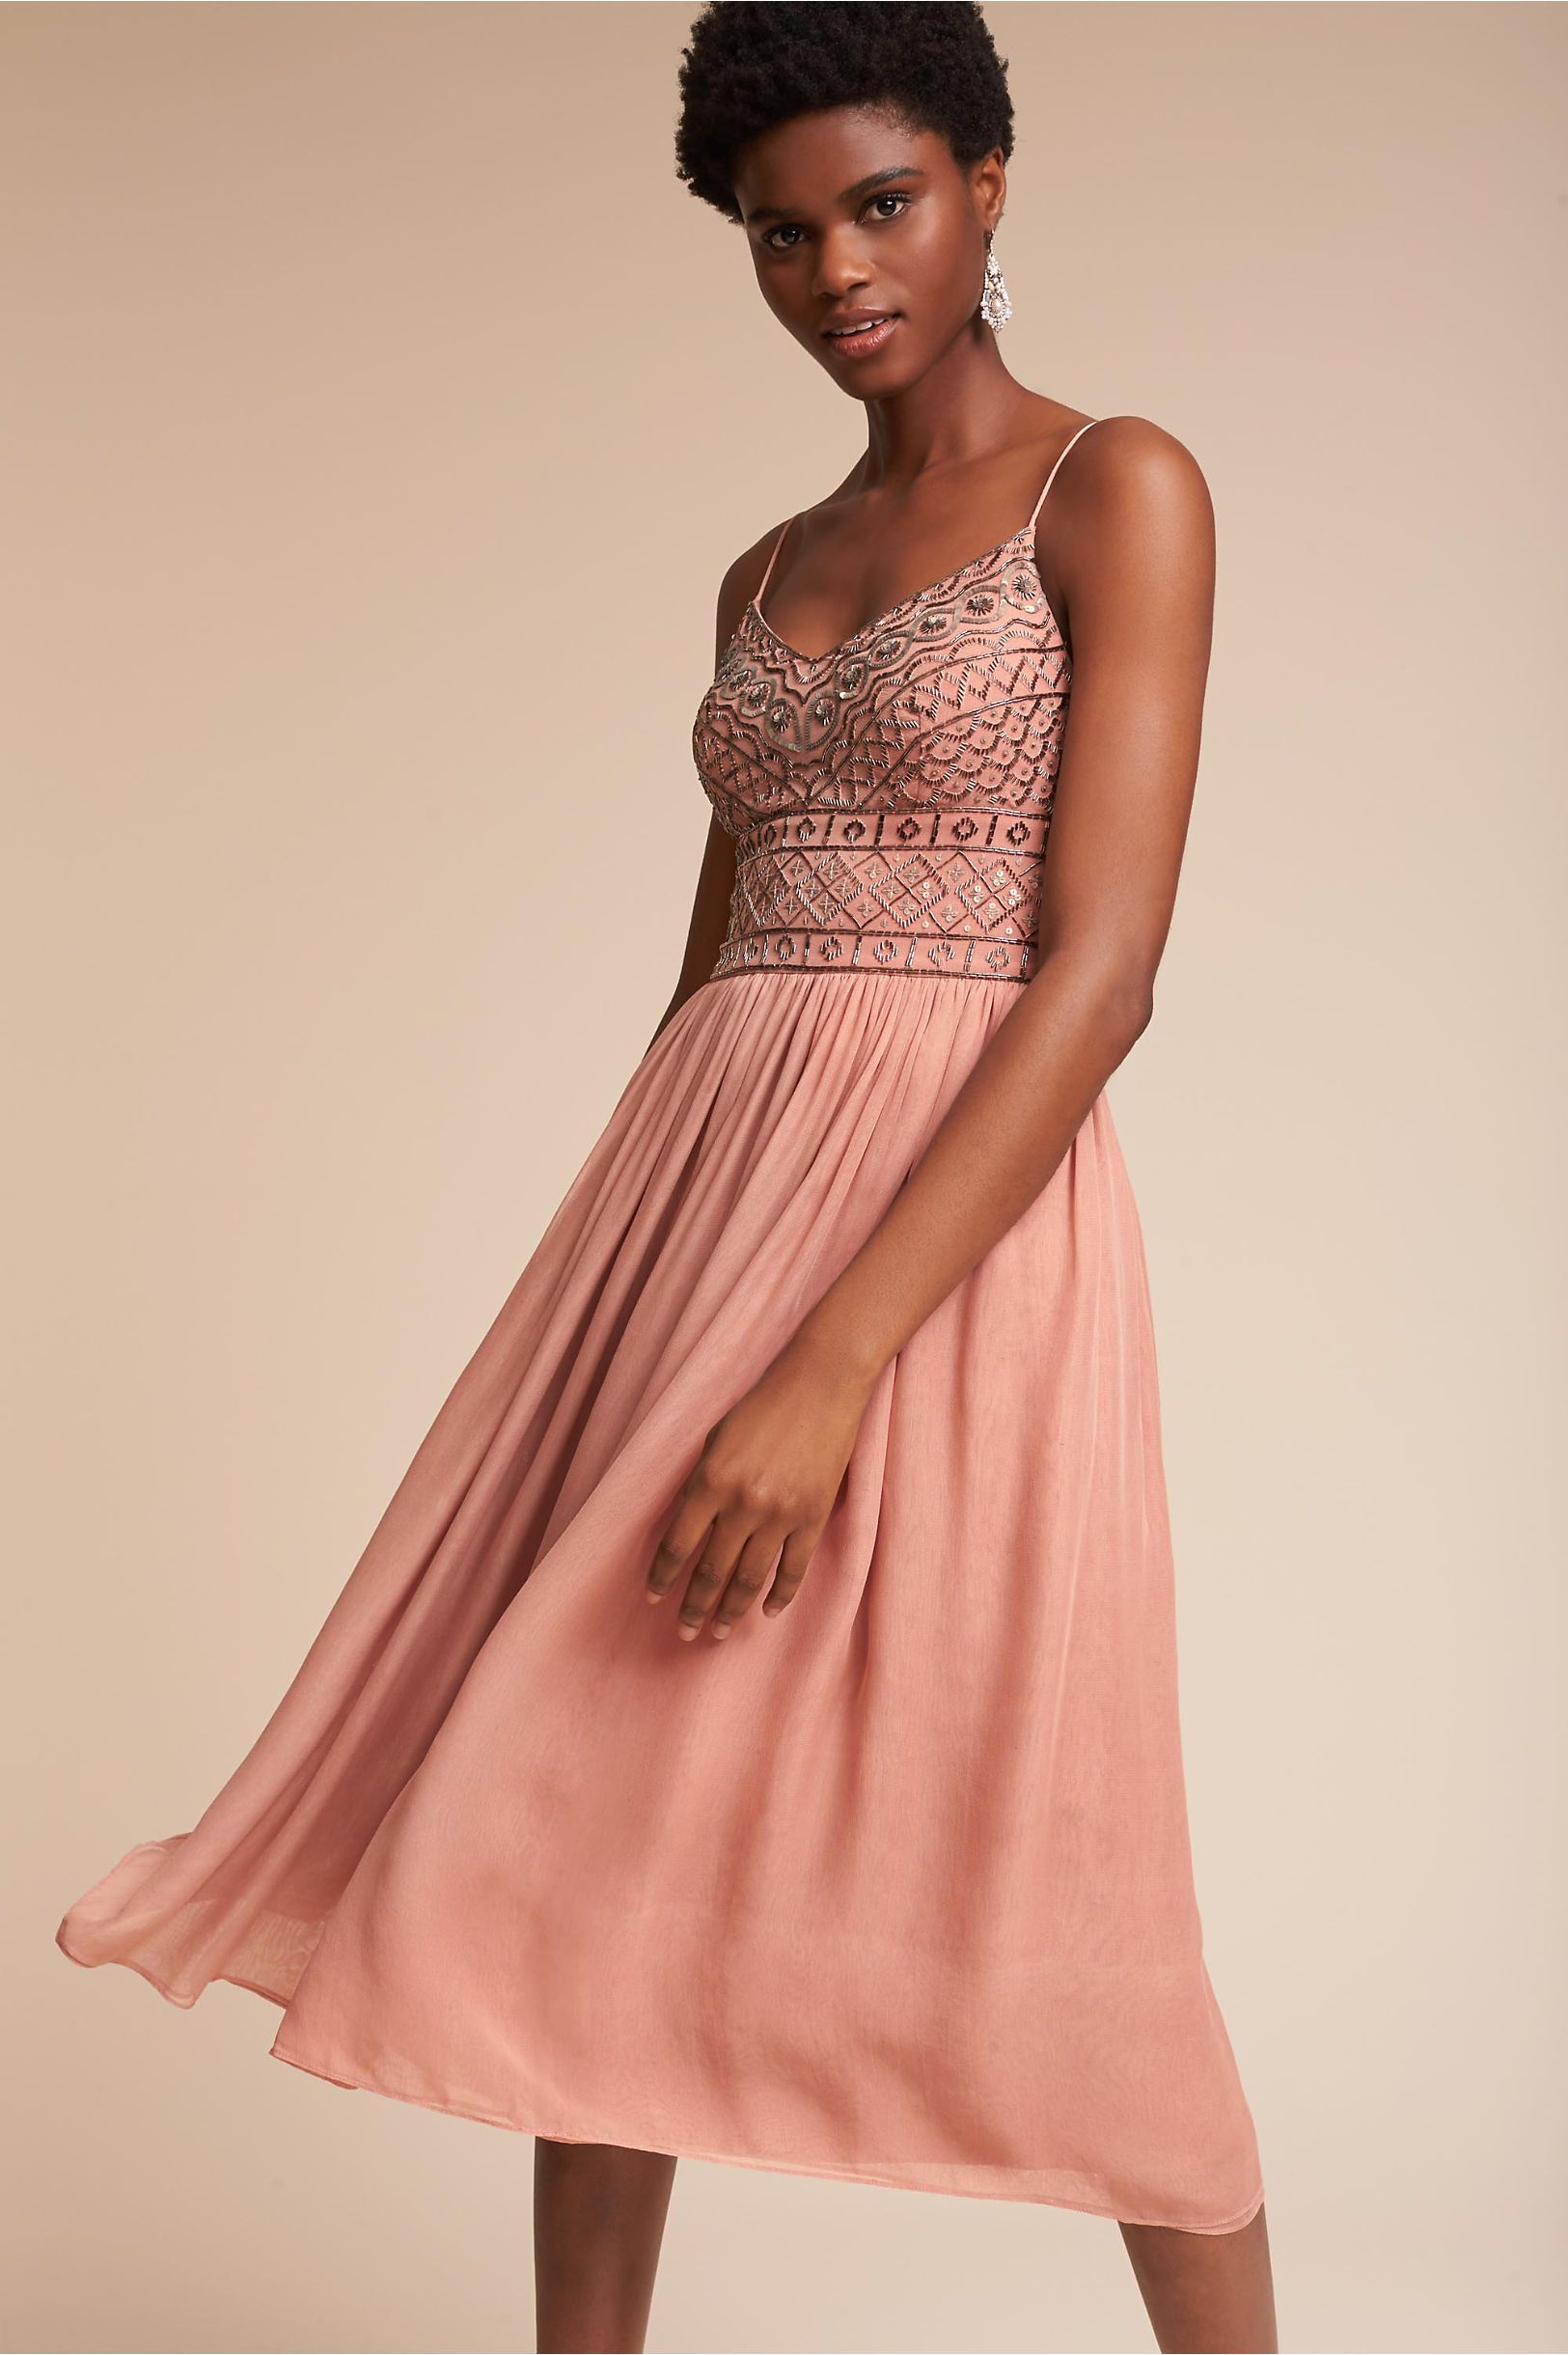 c57d43c3ad BHLDN s Bristol Dress in Orchid Pink